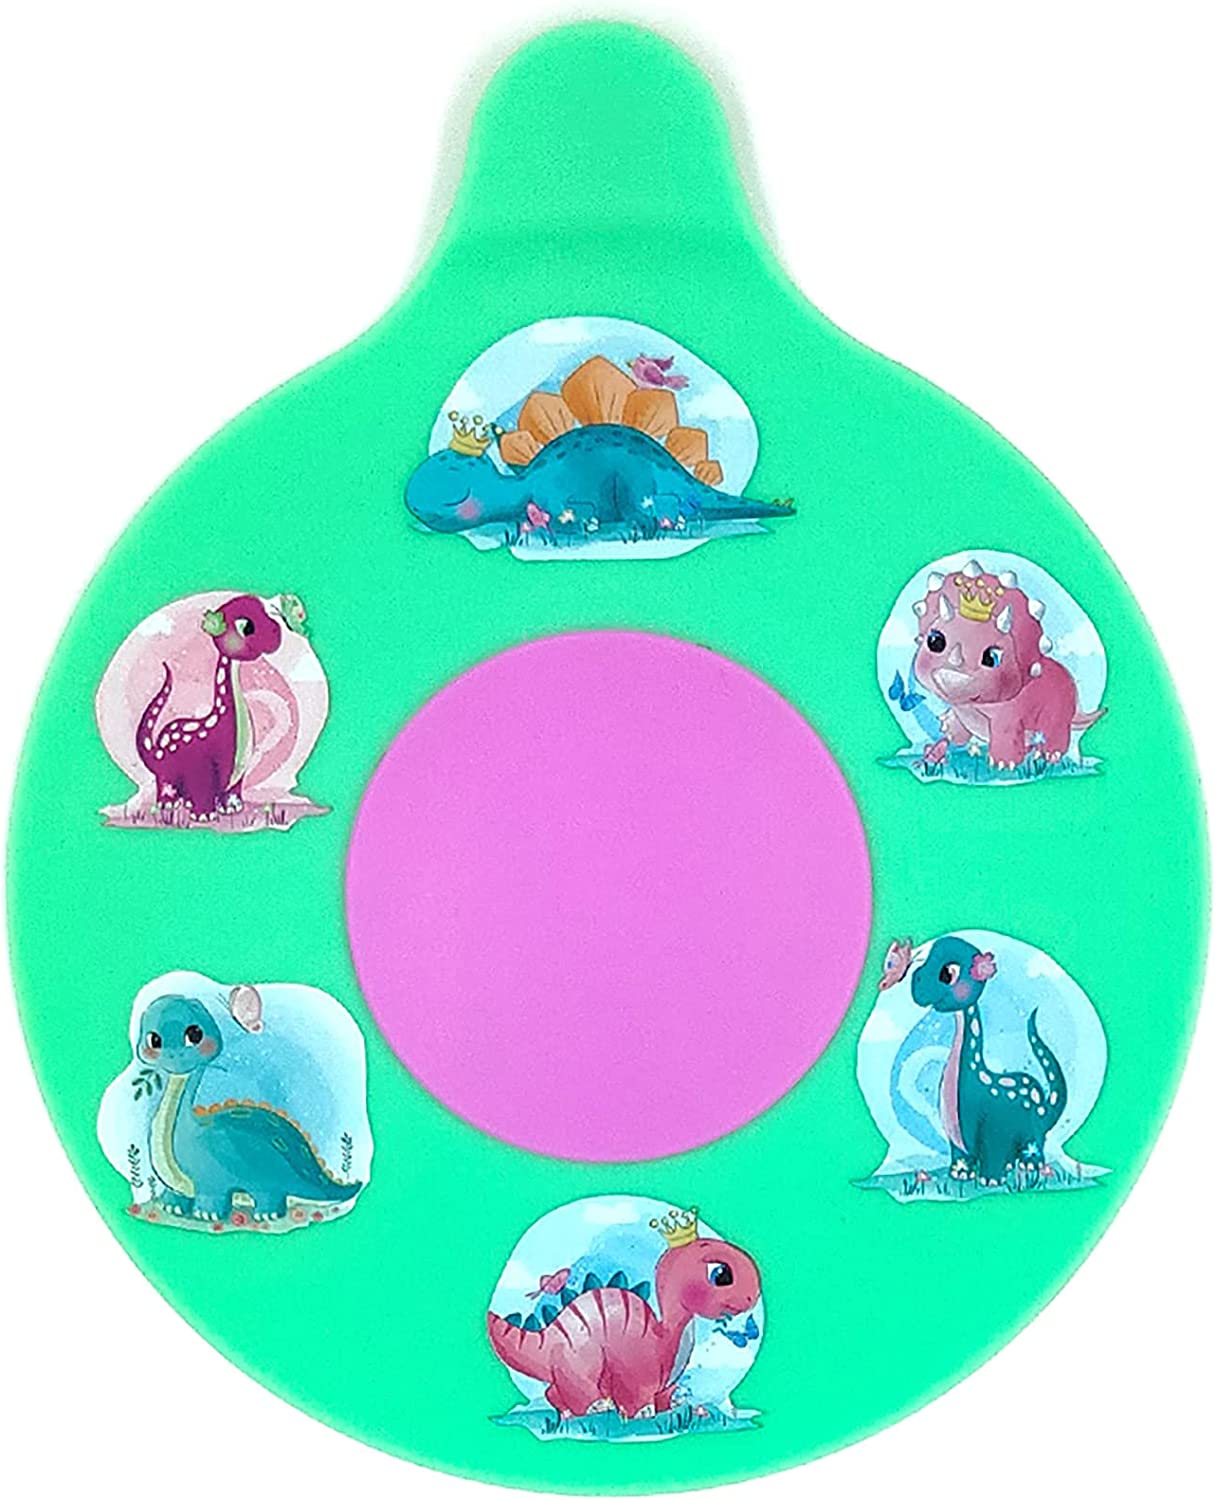 ConvEzy Bathtub Drain Stopper for Kids, Adorable Tub Drain Stopper Plug, Kids Tots Babies Gift Idea, Fun and Happy Bathing Experience, Safe, Soft Silicone (Dinosaurs Cute Crown Collection)